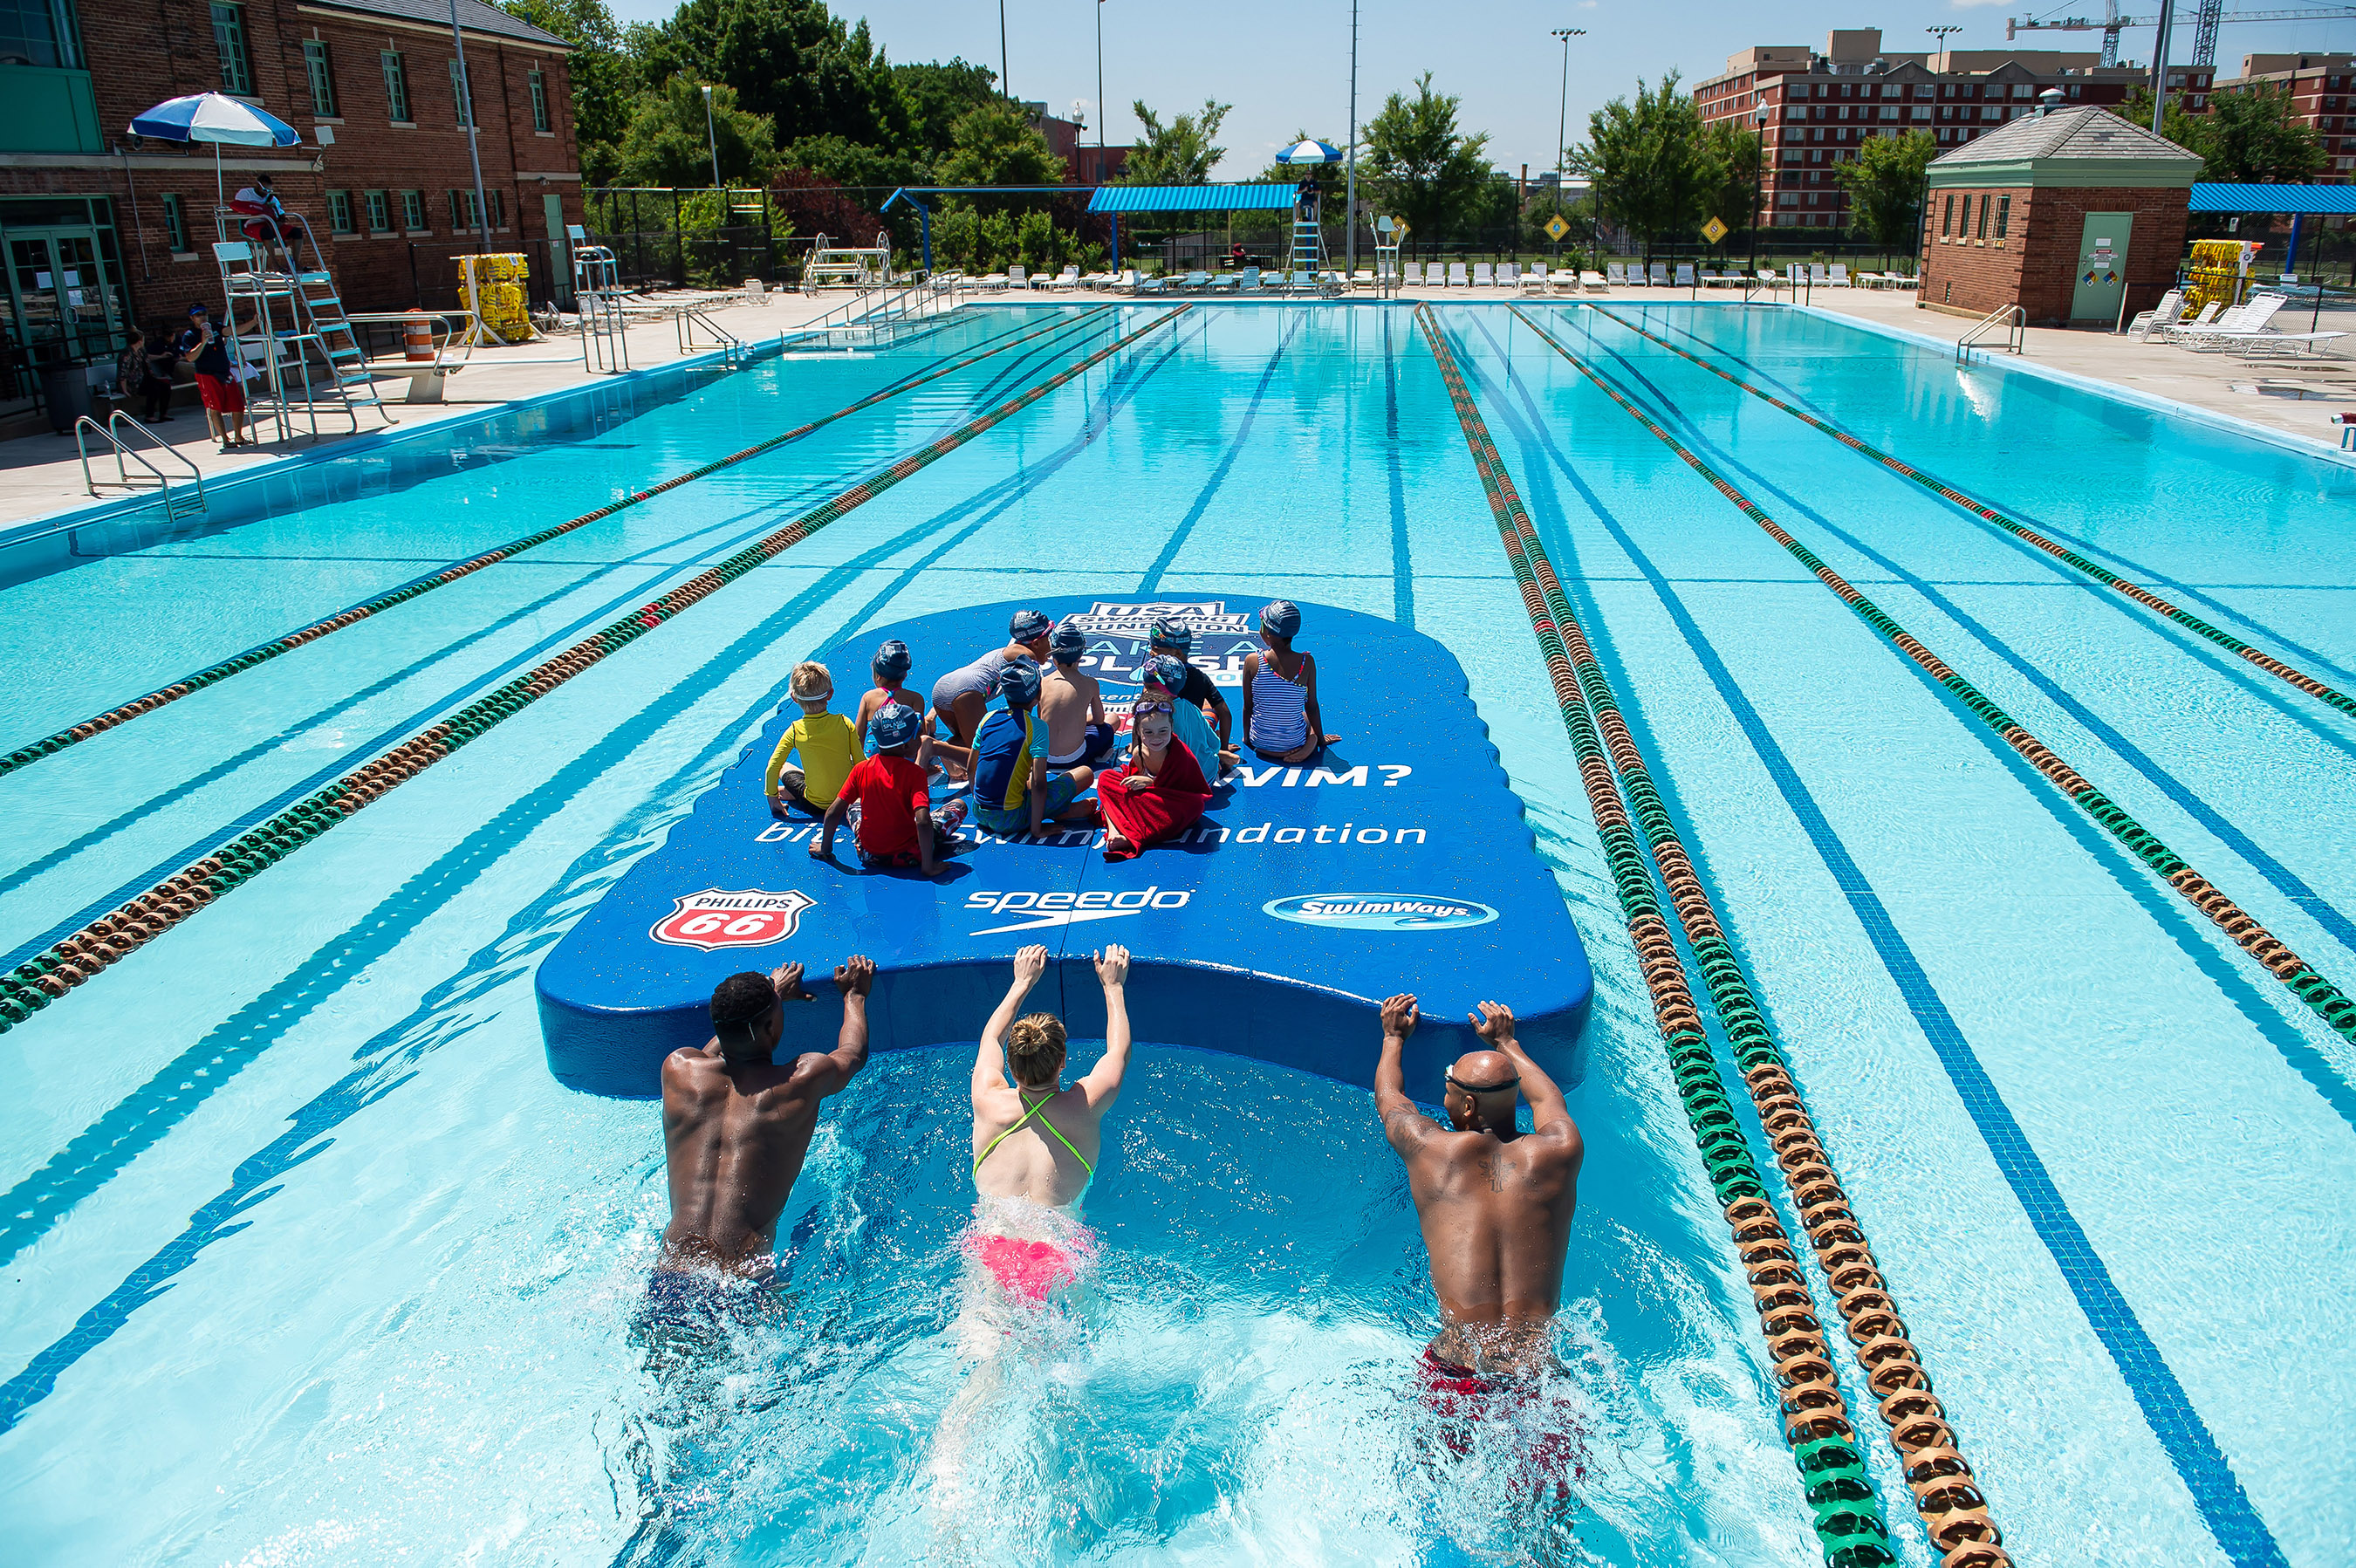 USA Swimming Foundation Sets GUINNESS WORLD RECORDS® for Largest Kickboard to Kick Off the 10th Annual Make a Splash Tour Presented by Phillips 66